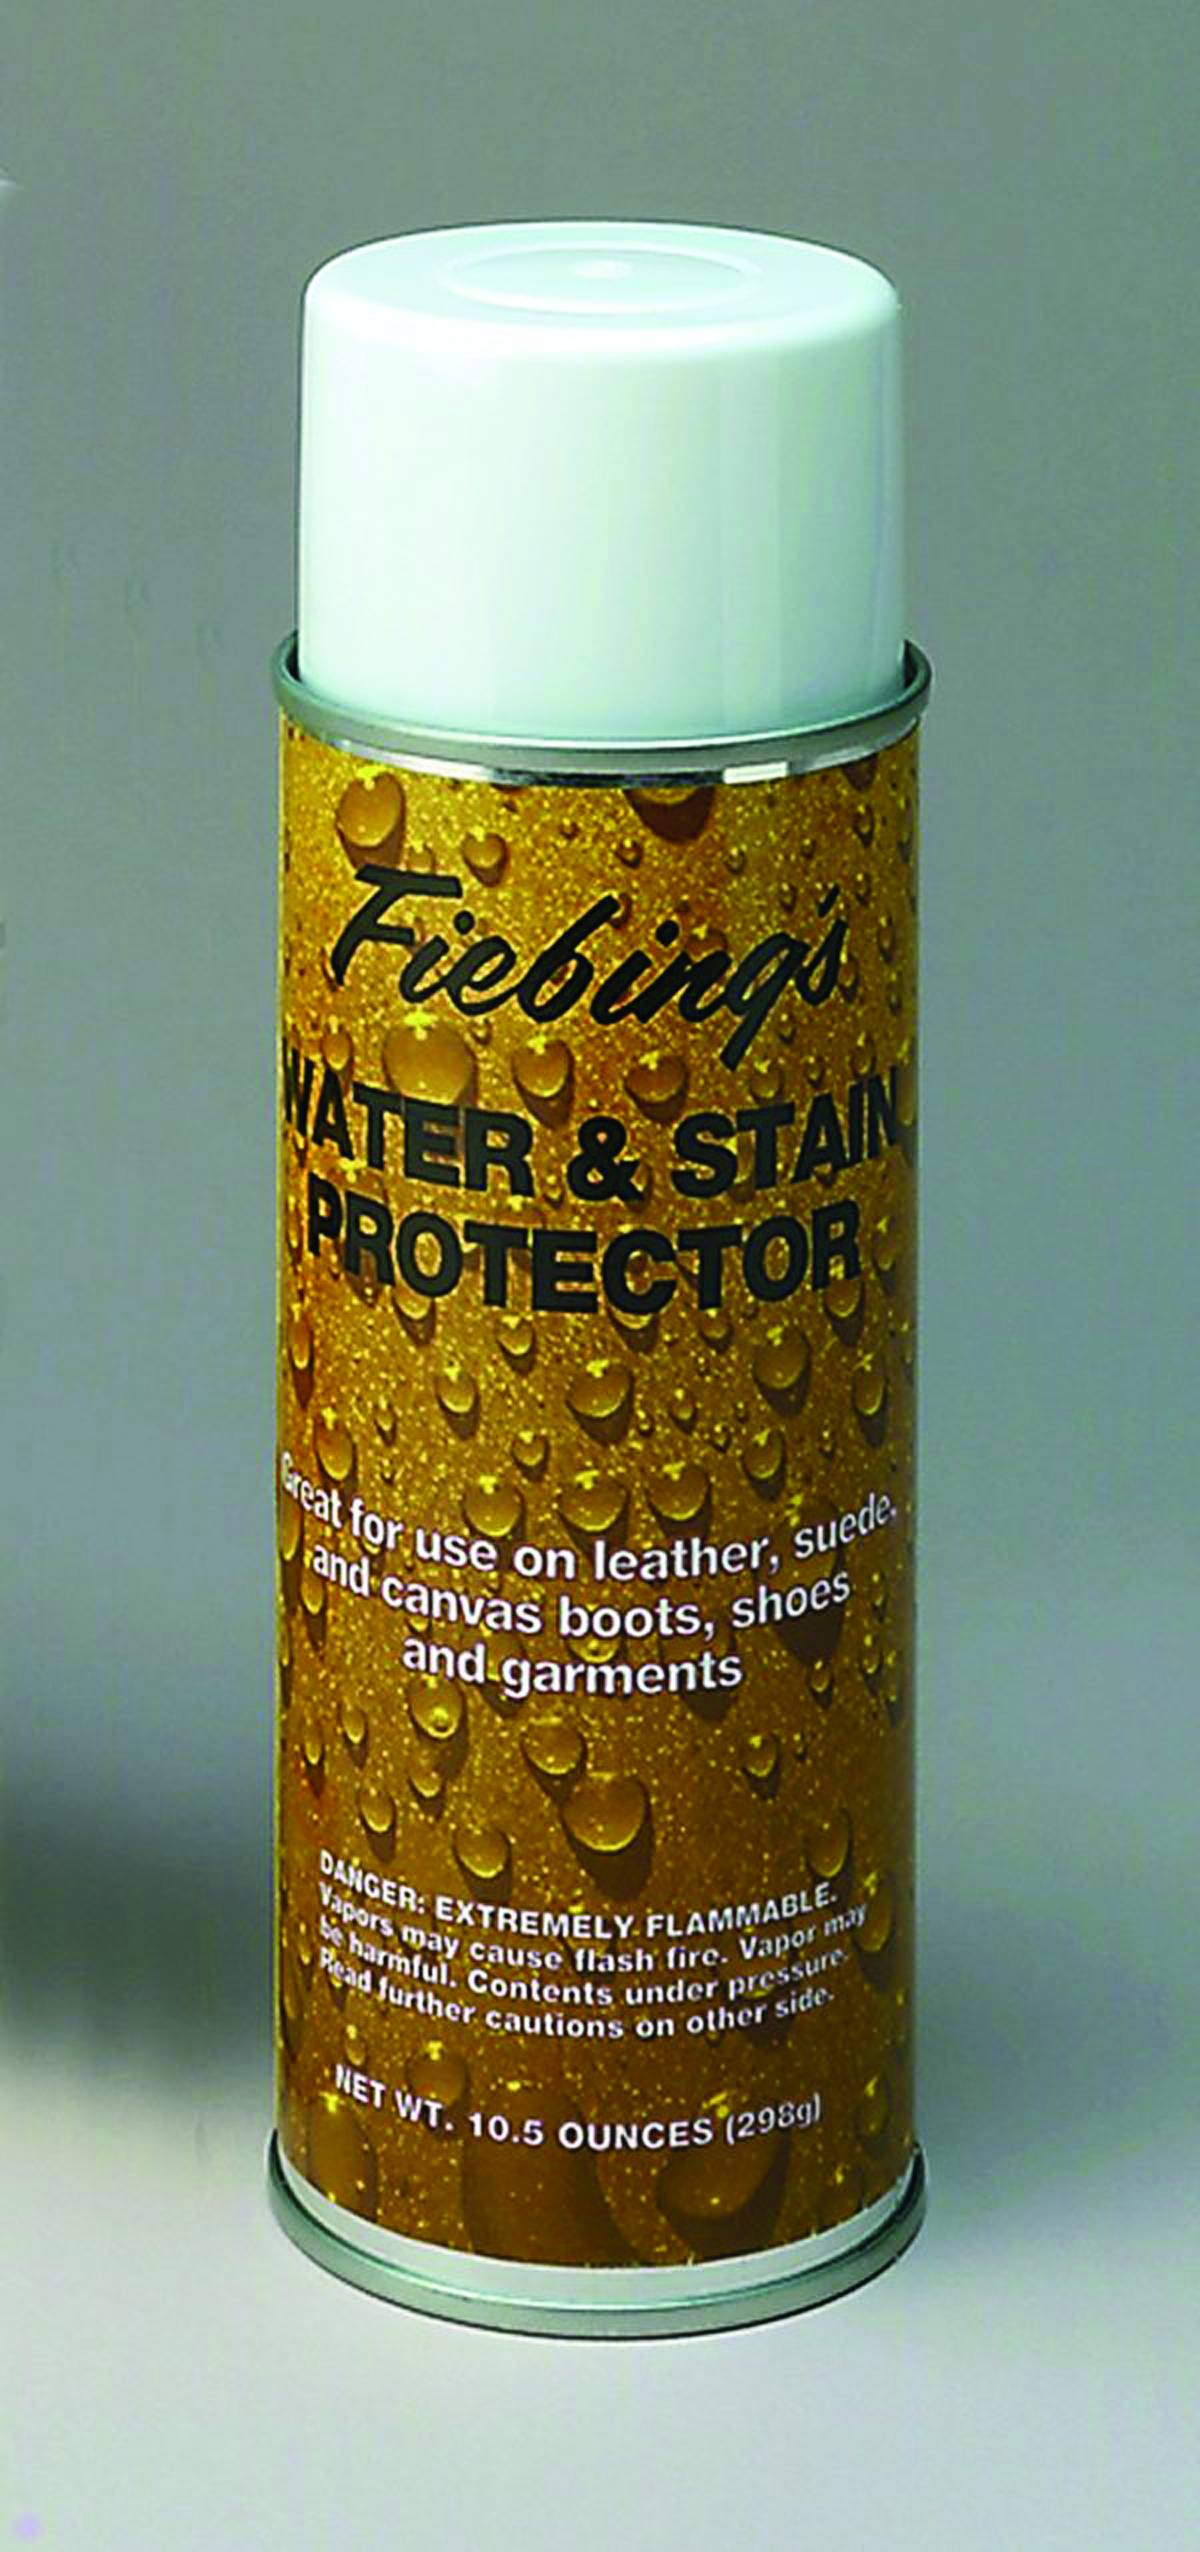 Snow Proof Water And Stain Protector Aerosol